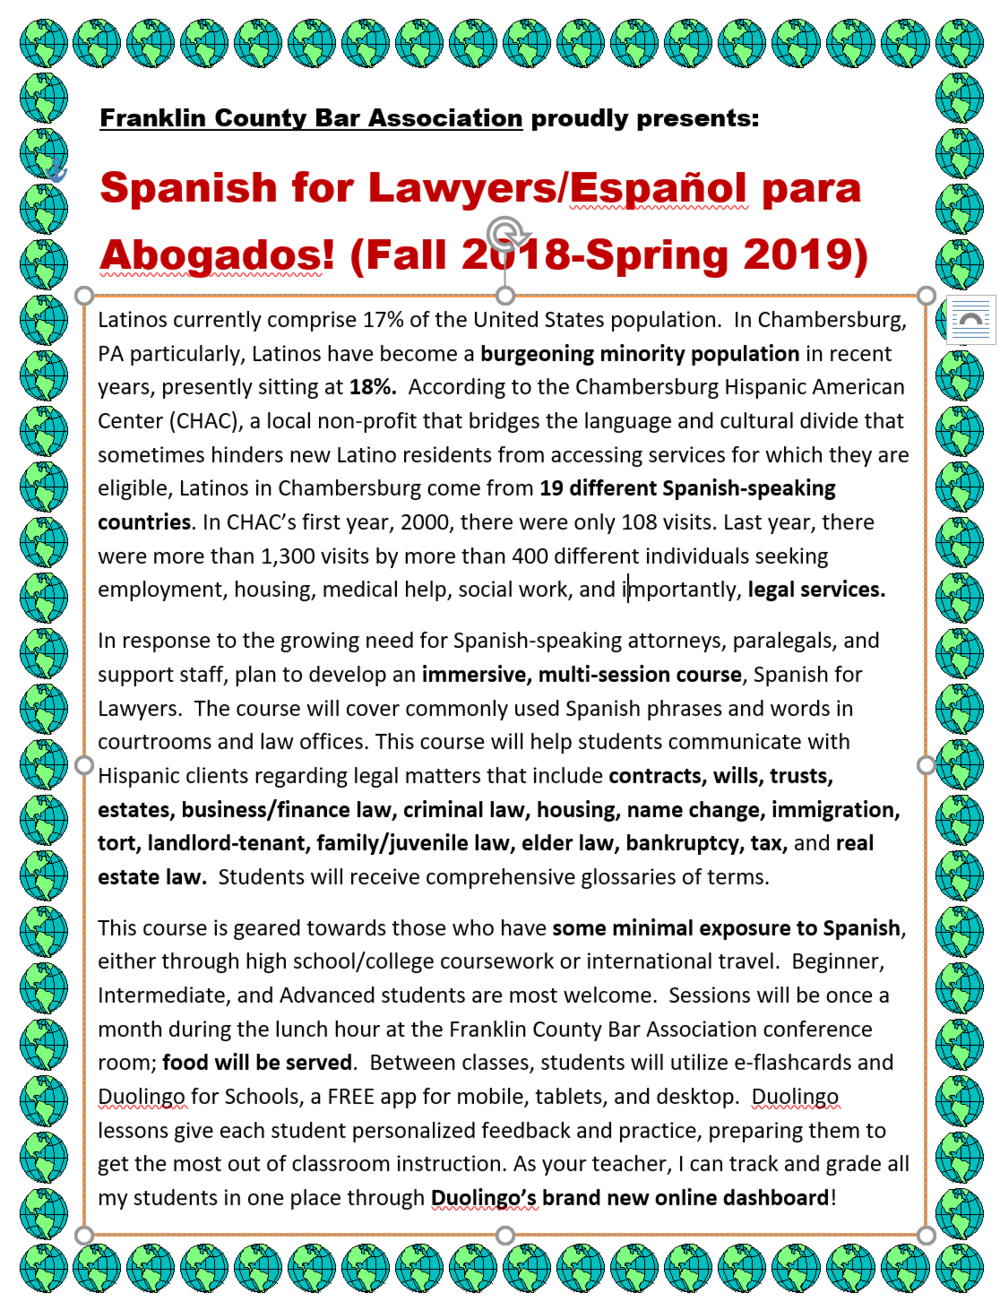 Spanish for Lawyers 1.PNG